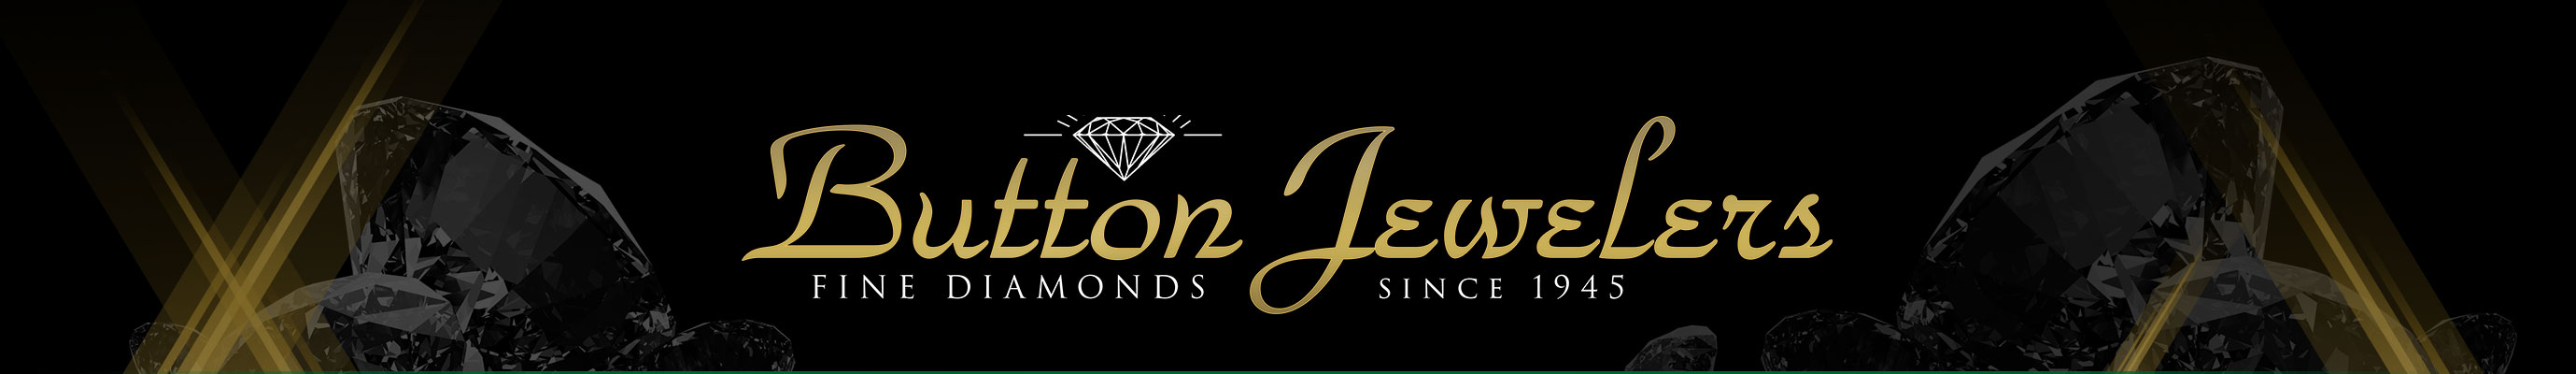 Button Jewelers Fine Diamonds Logo